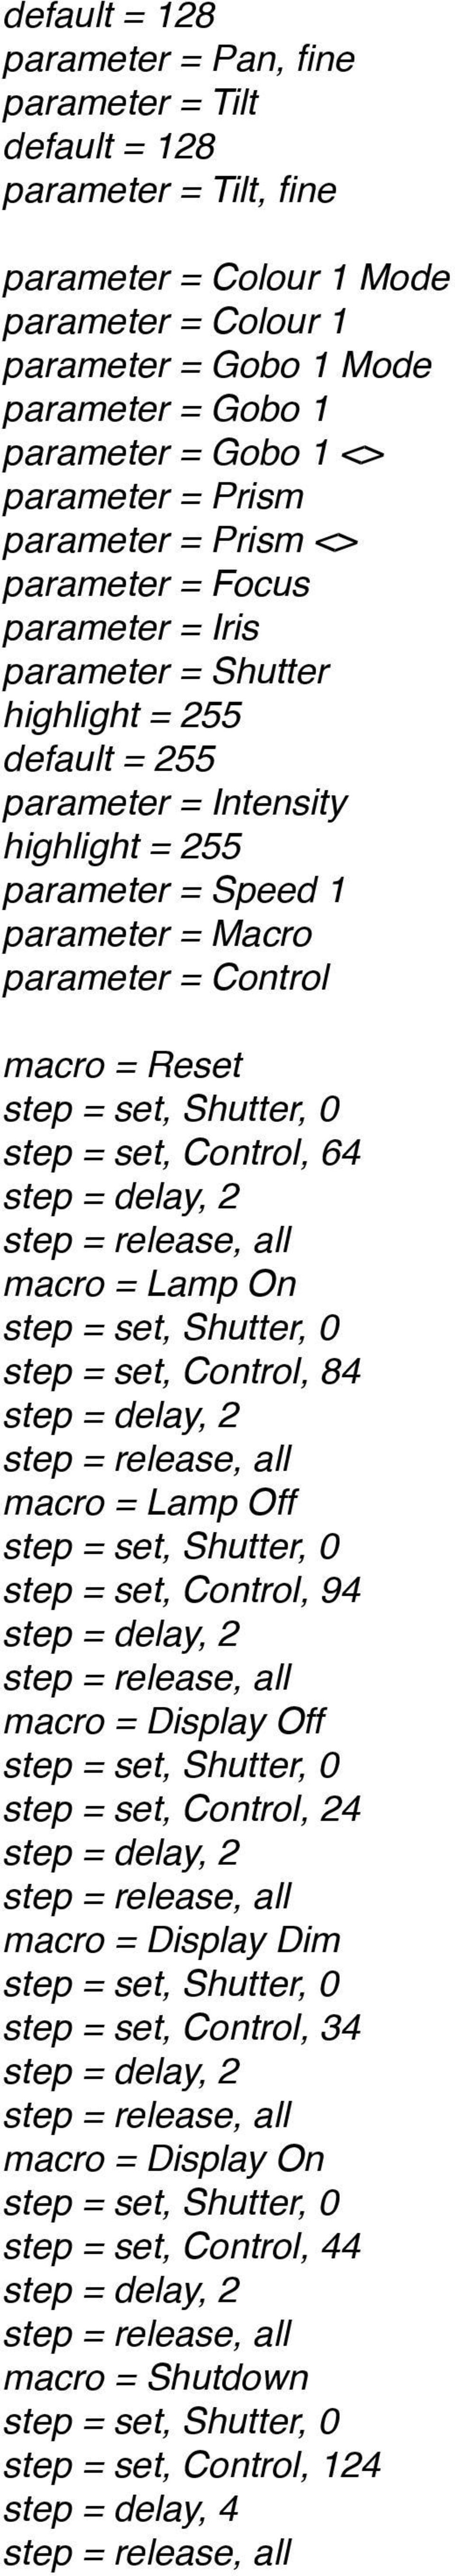 Control macro = Reset step = set, Control, 64 step = delay, 2 macro = Lamp On step = set, Control, 84 step = delay, 2 macro = Lamp Off step = set, Control, 94 step = delay, 2 macro = Display Off step